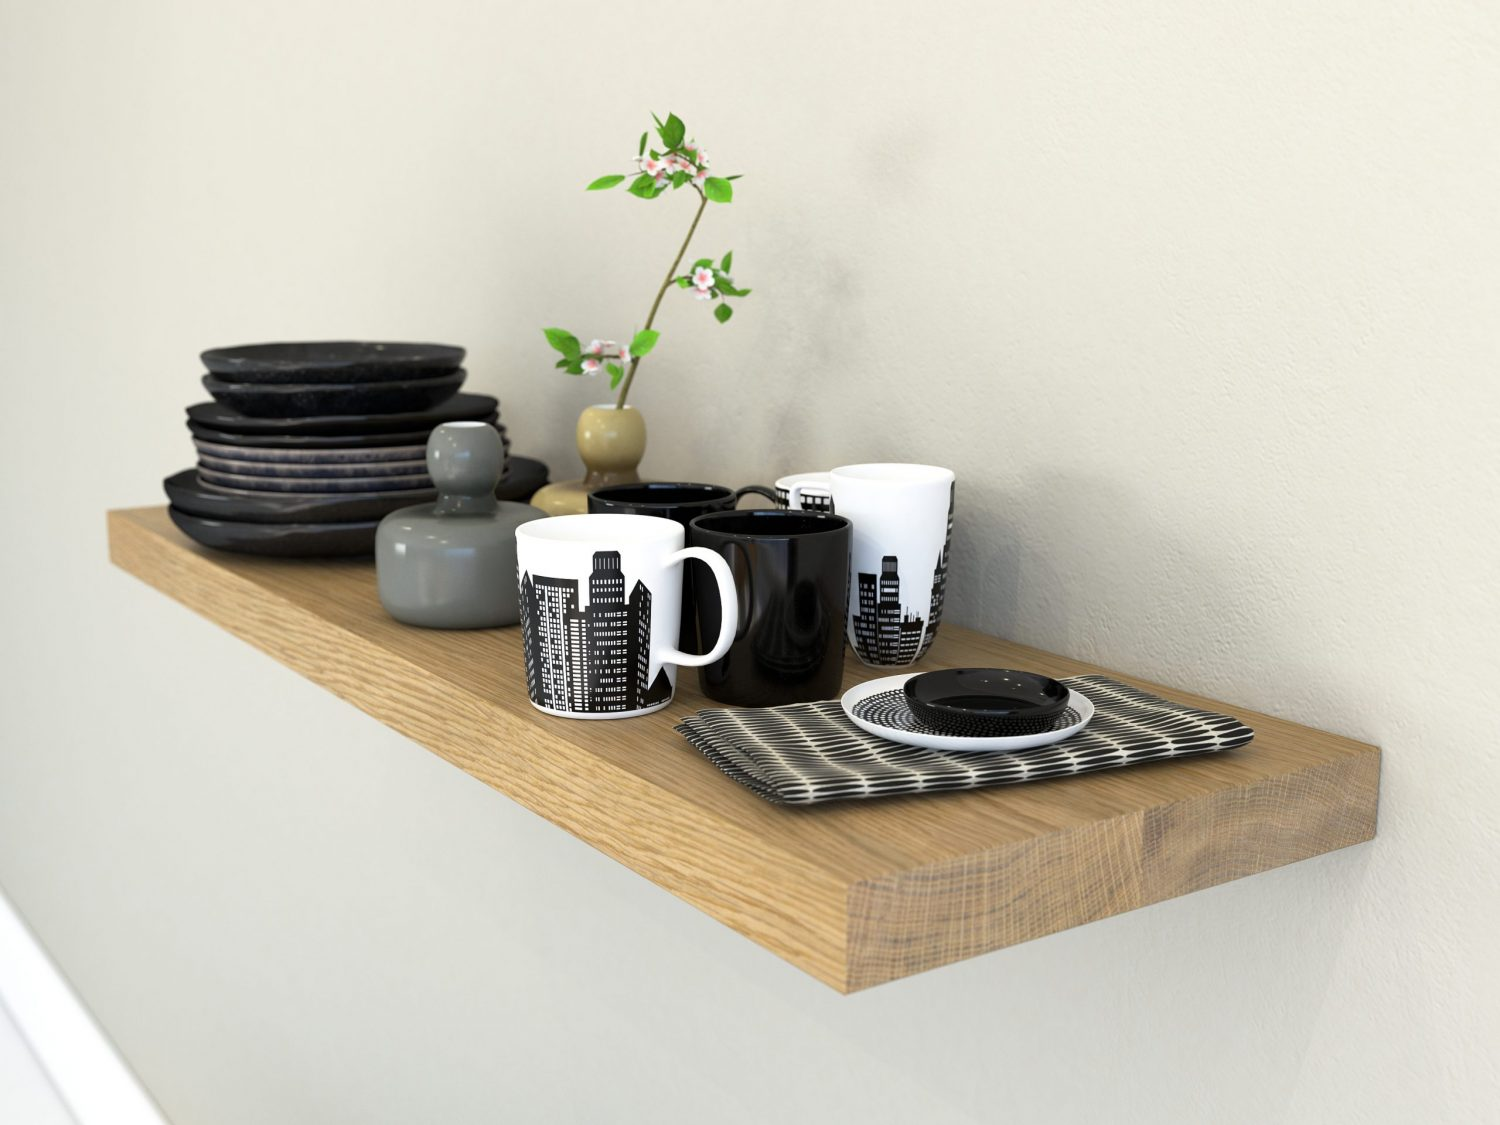 Heavy duty kitchen wall shelves floating shelves solid oak floating shelf for kitchen plate shelves oiled oak finish scaled e